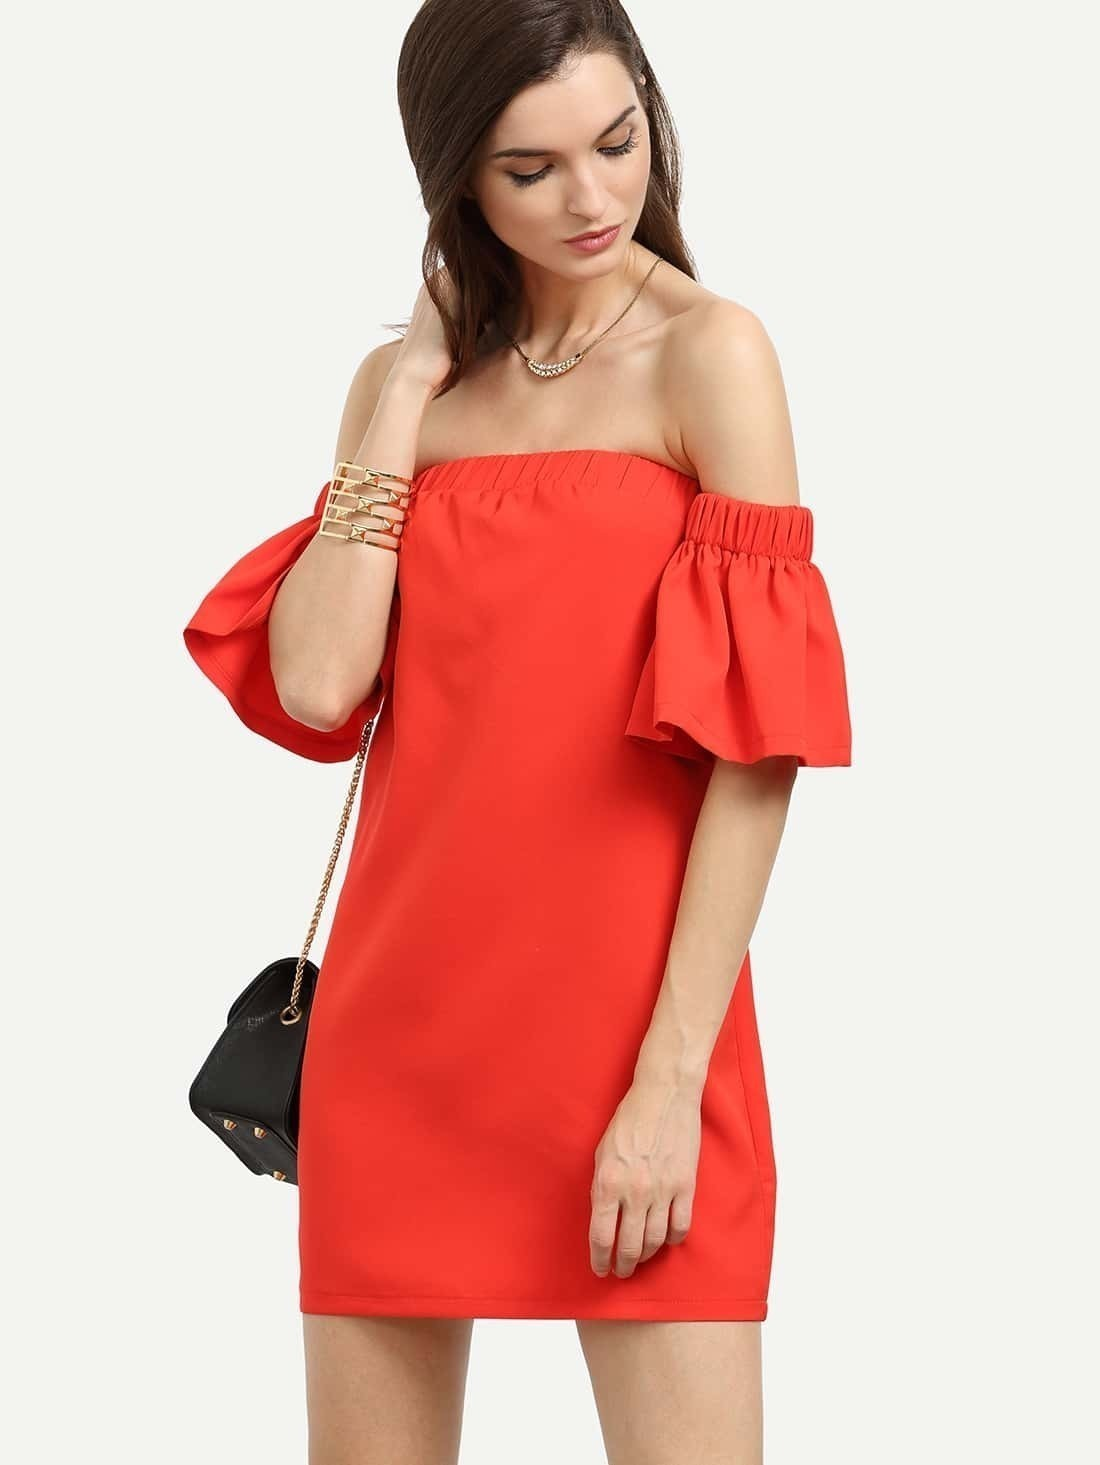 539c64e476 Red Off The Shoulder Ruffle Sleeve Dress EmmaCloth-Women Fast ...